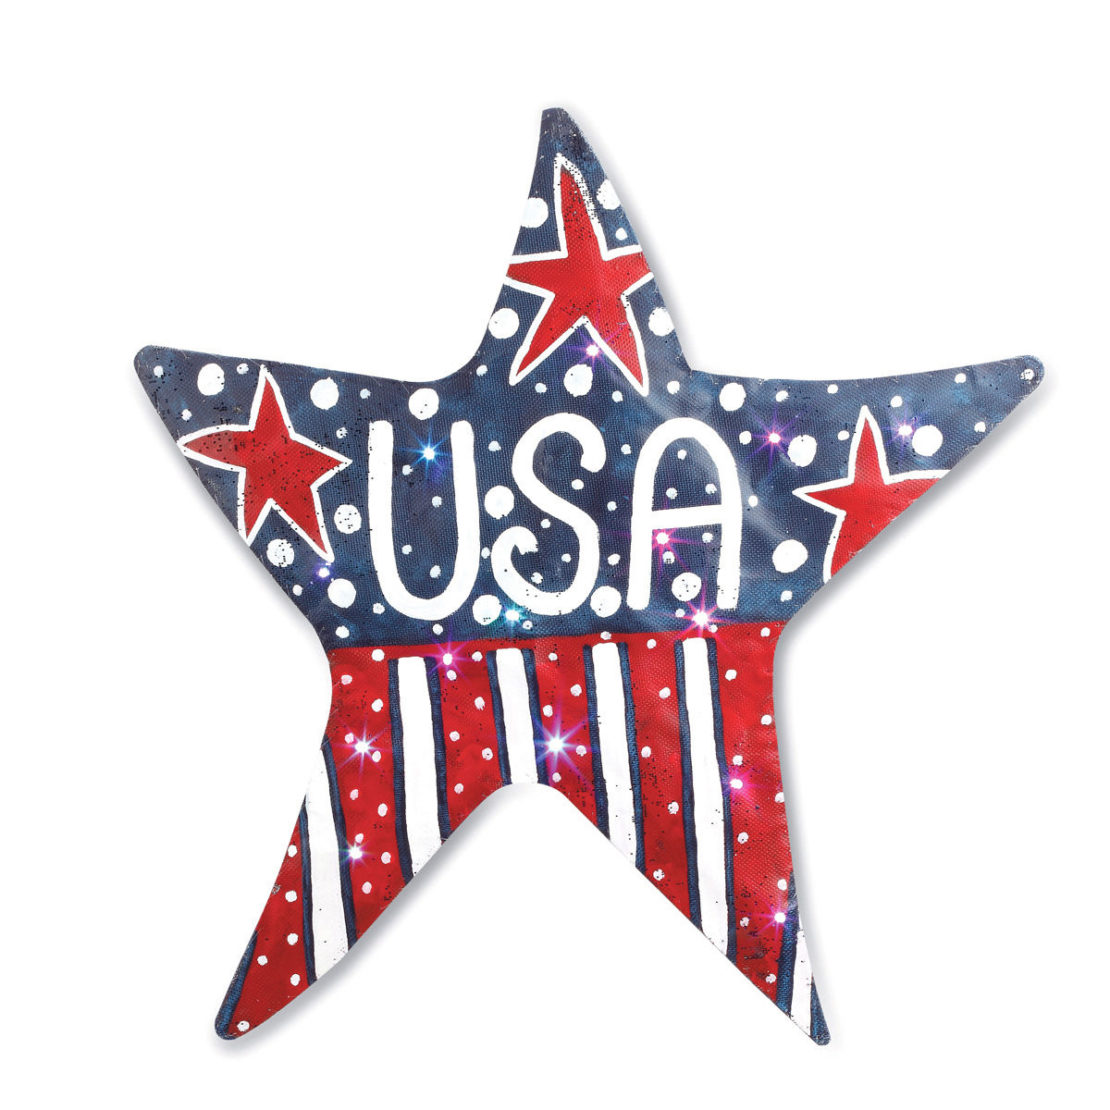 lit-usa-star-door-hanger